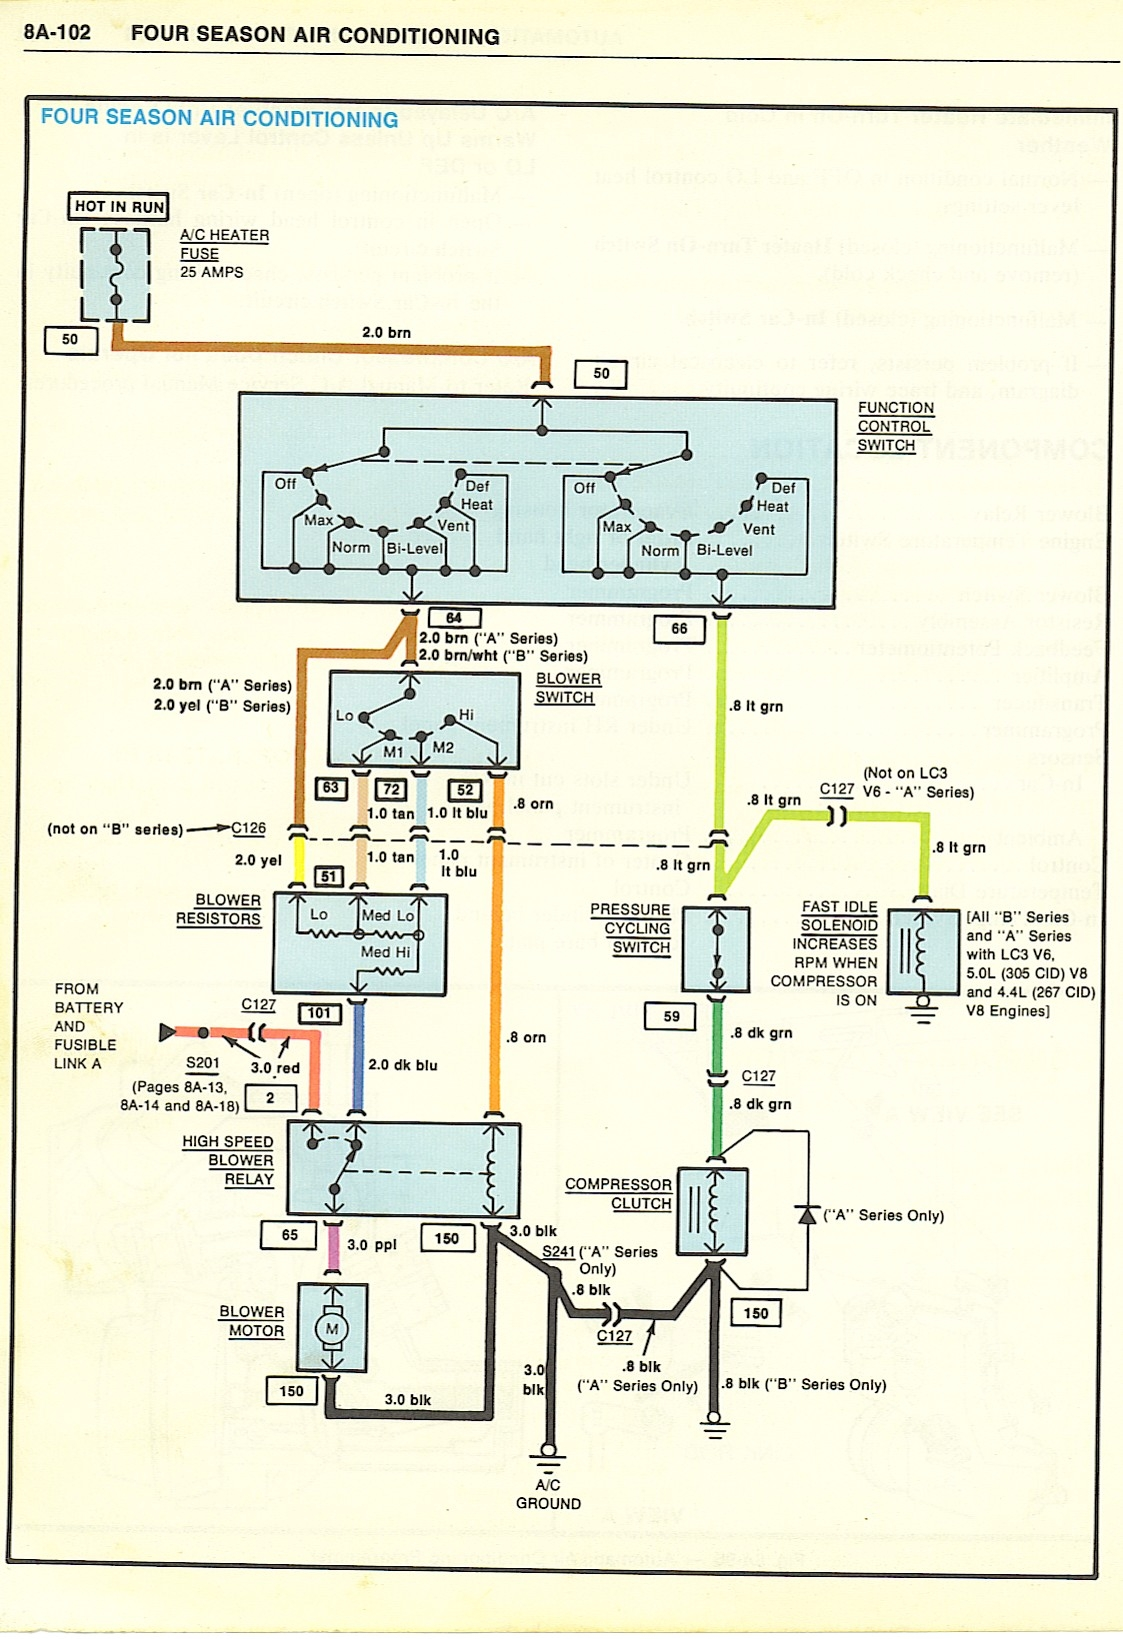 1968 FourSeasonAirConditioner chevy diagrams ac wiring diagram at reclaimingppi.co